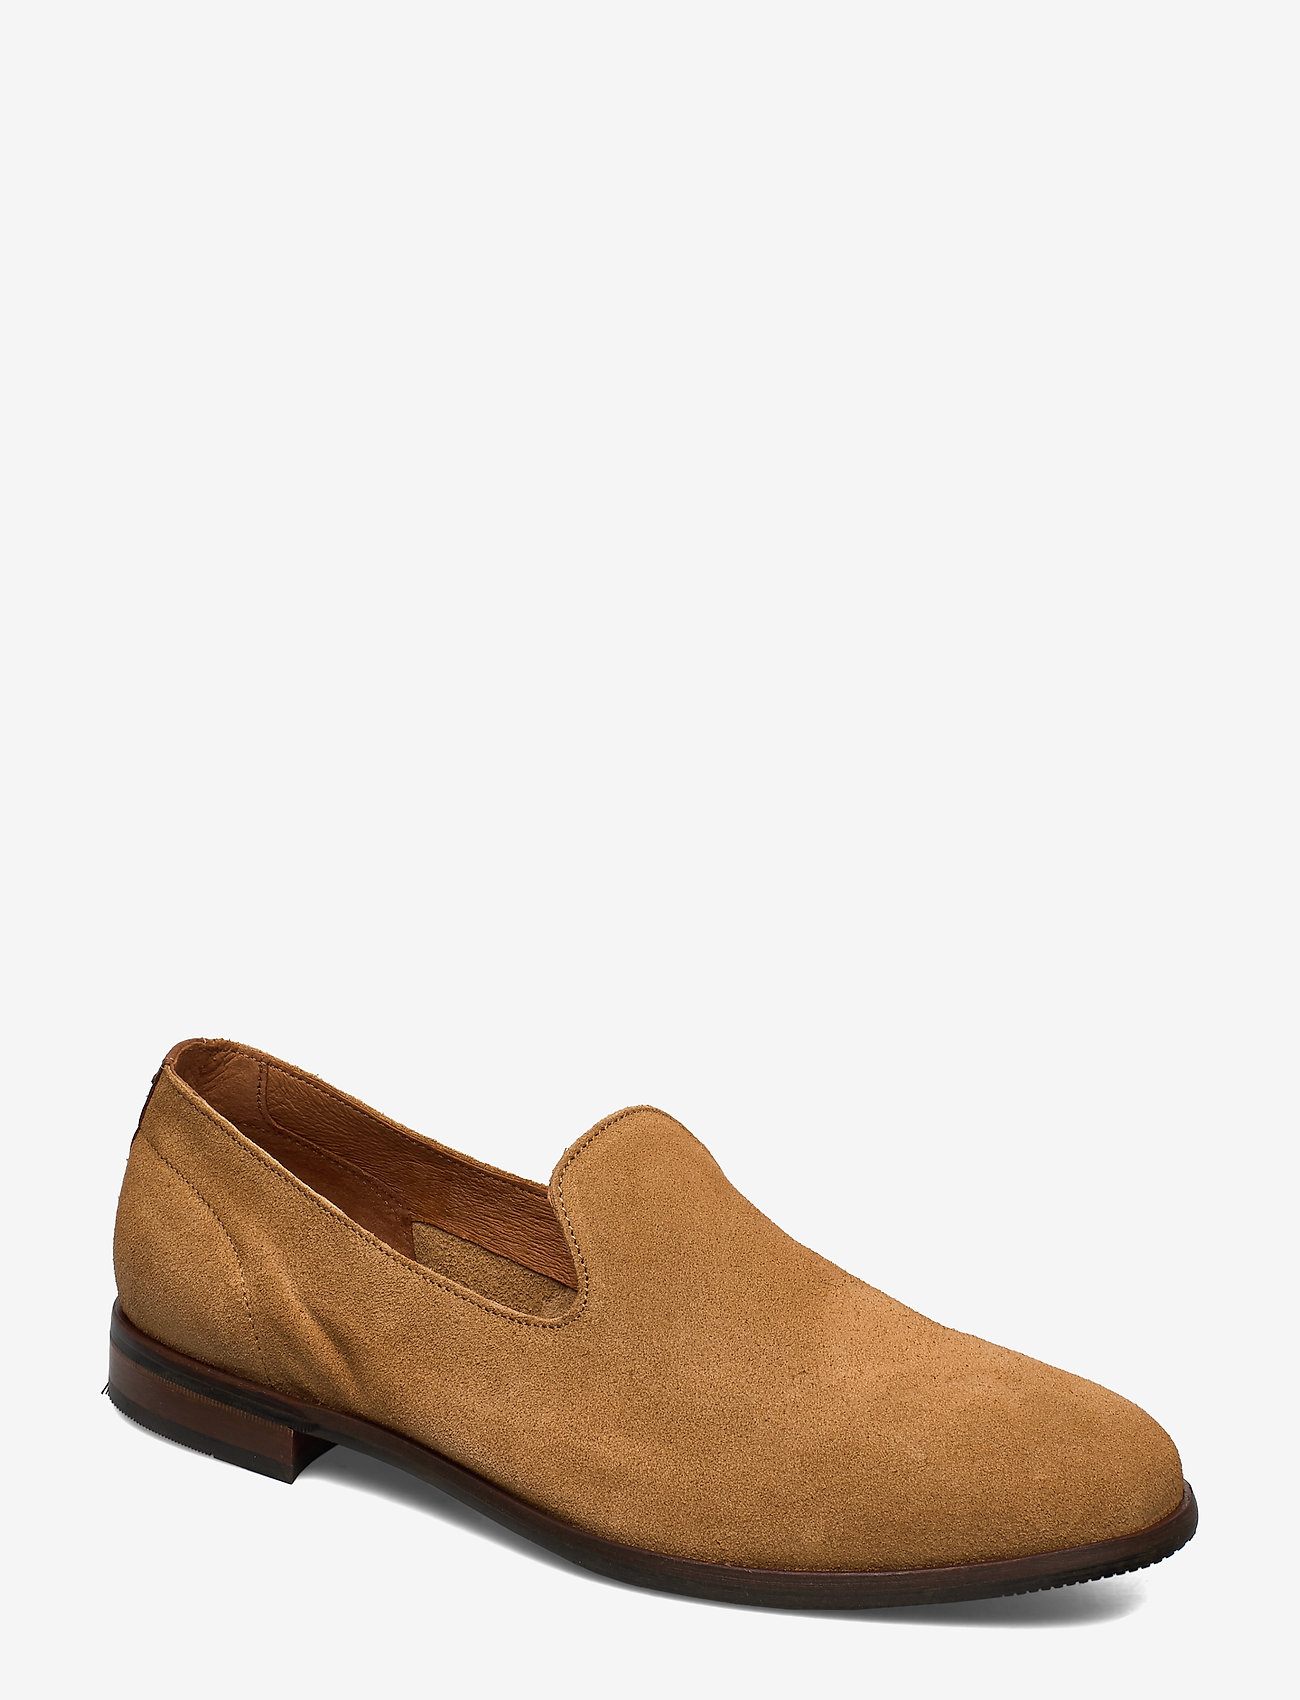 Shoe The Bear - STB-REY S - loafers - camel - 0